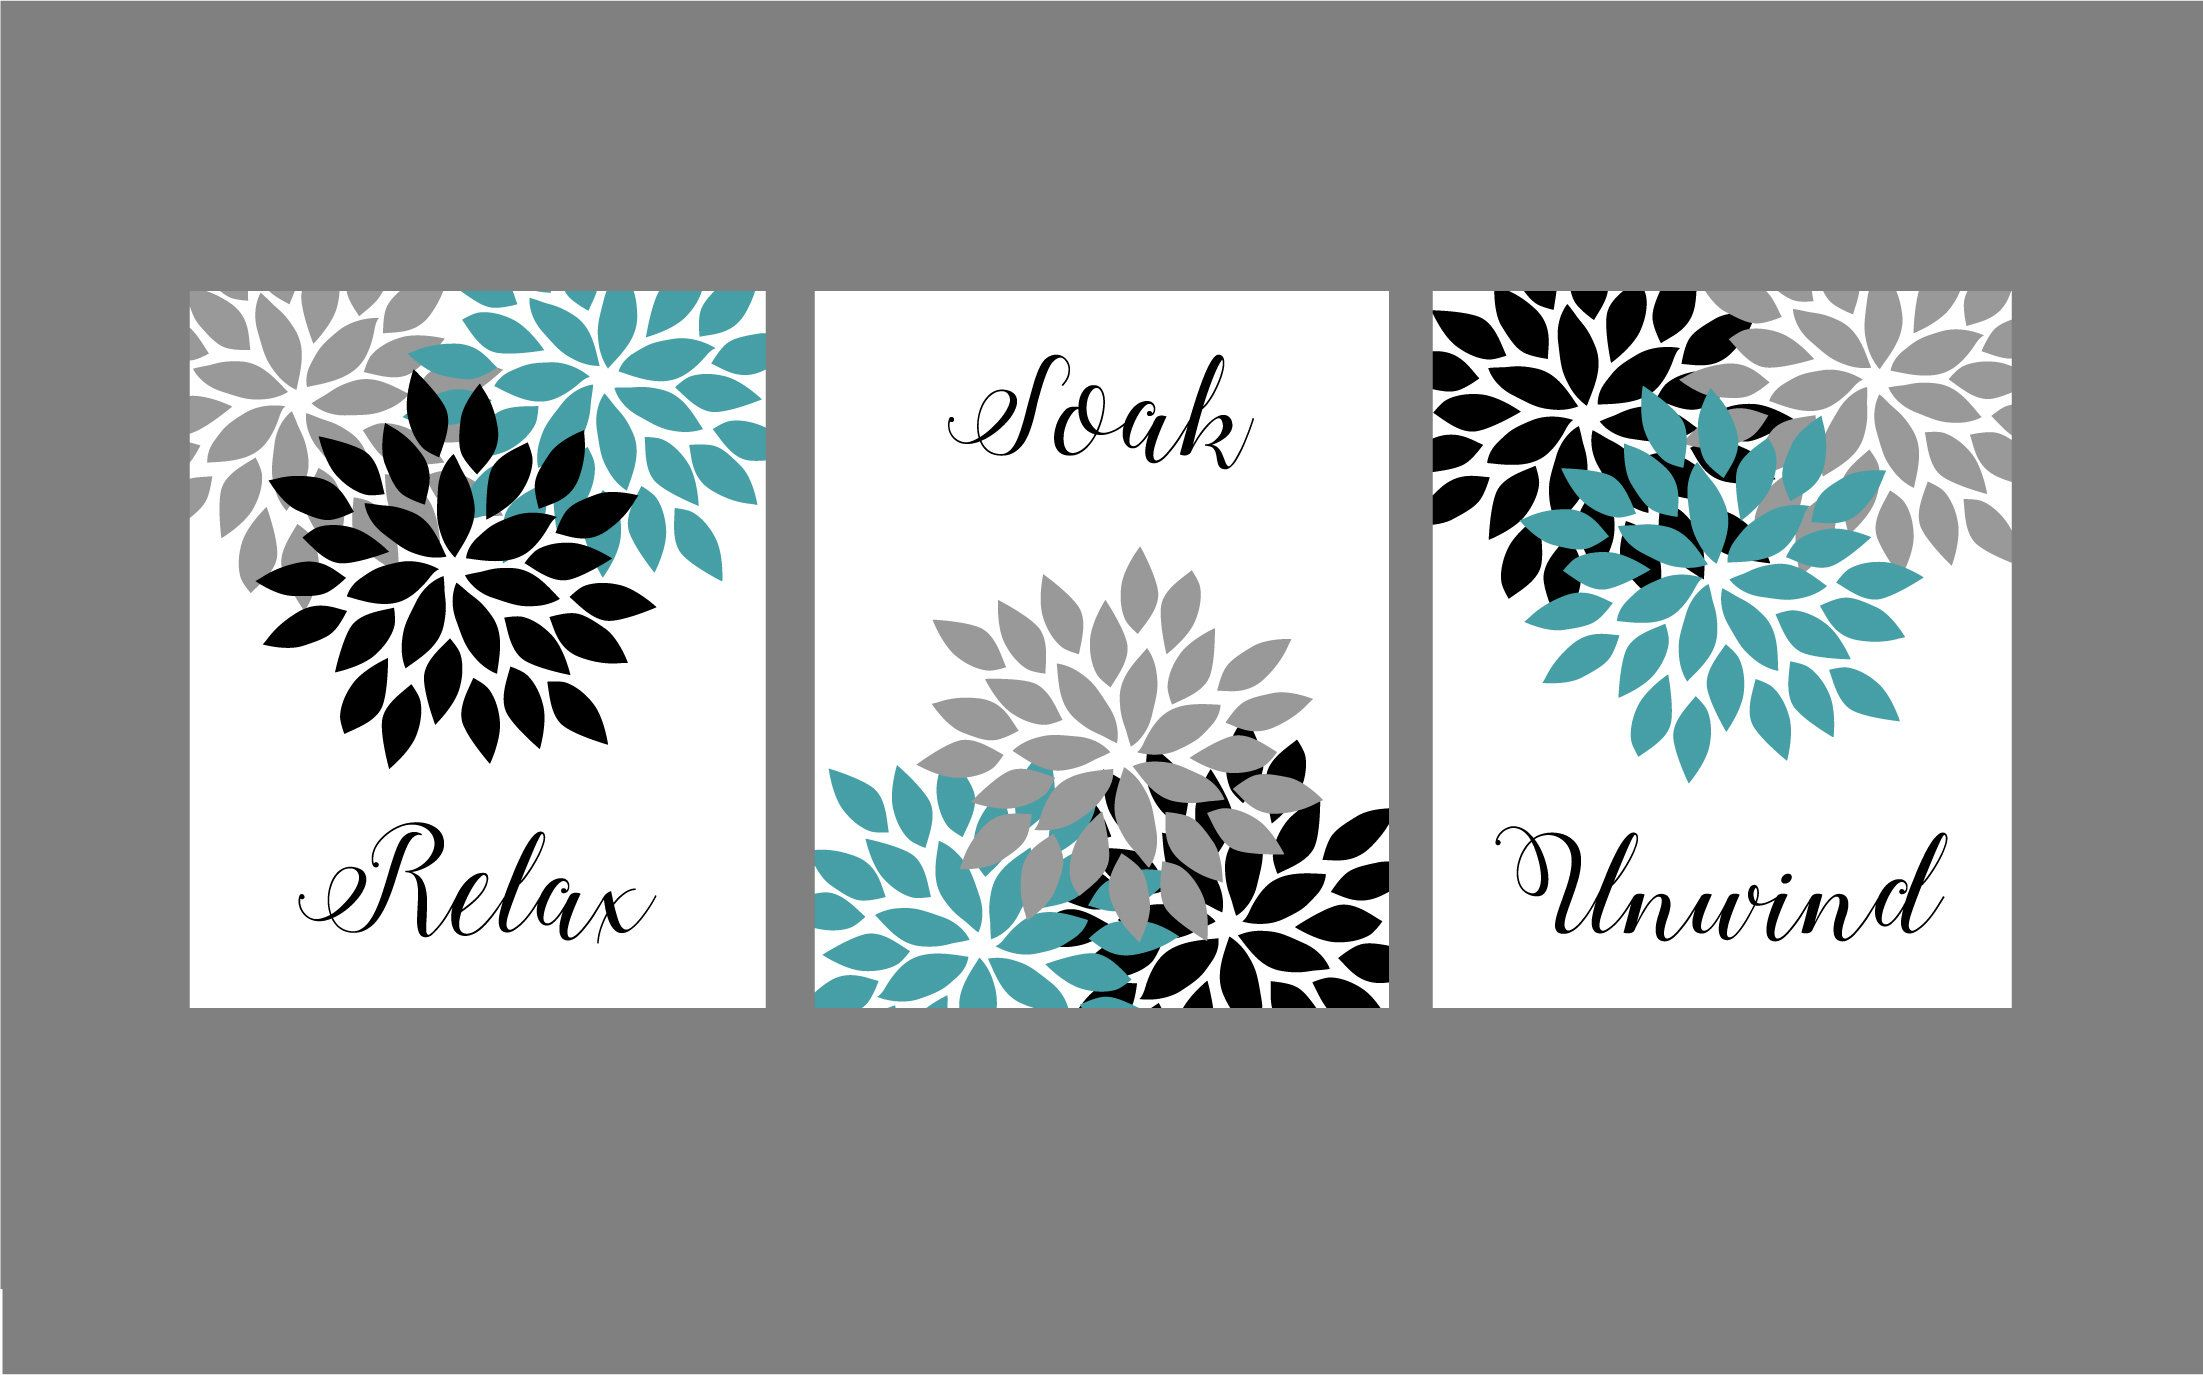 Teal Turquoise Grey Black Bathroom Wall Art Prints Relax Soak Neutral Bathroom Decor Turquoise Bathroom Decor Black Bathroom